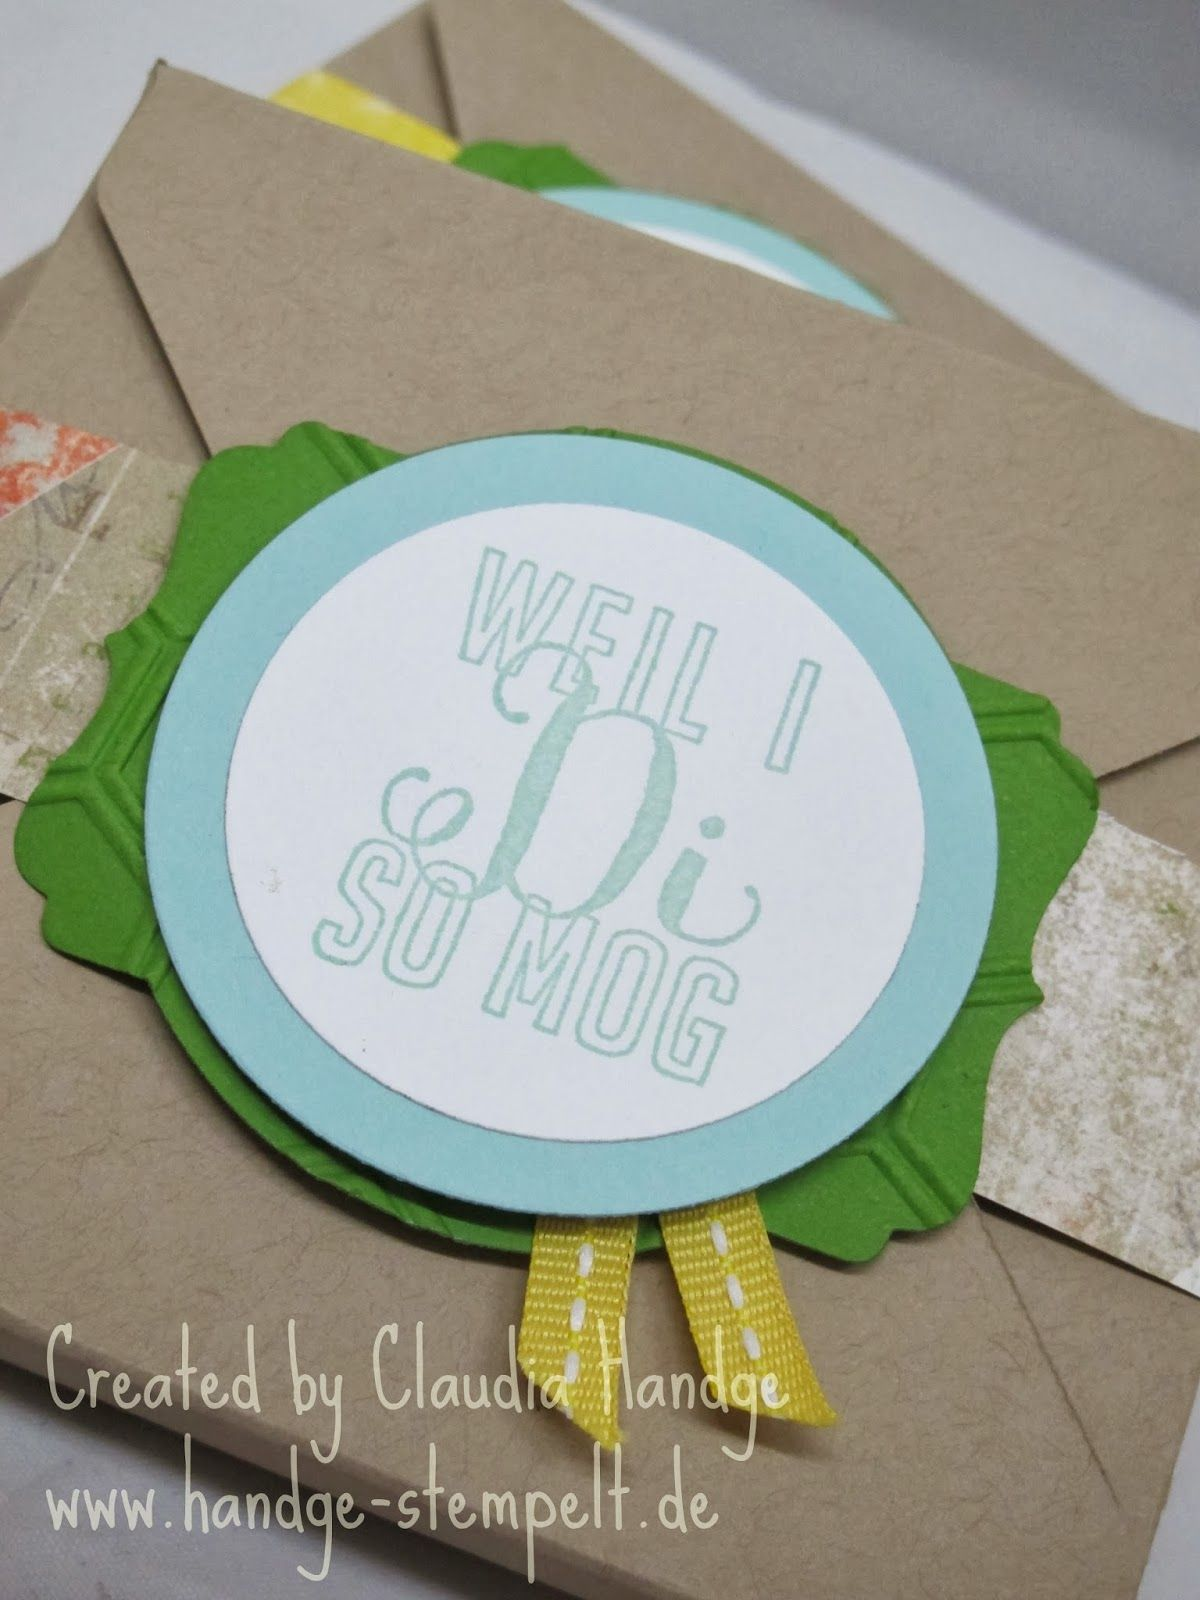 Valentine's Day project featuring Stampin' Up! products #StampinUp